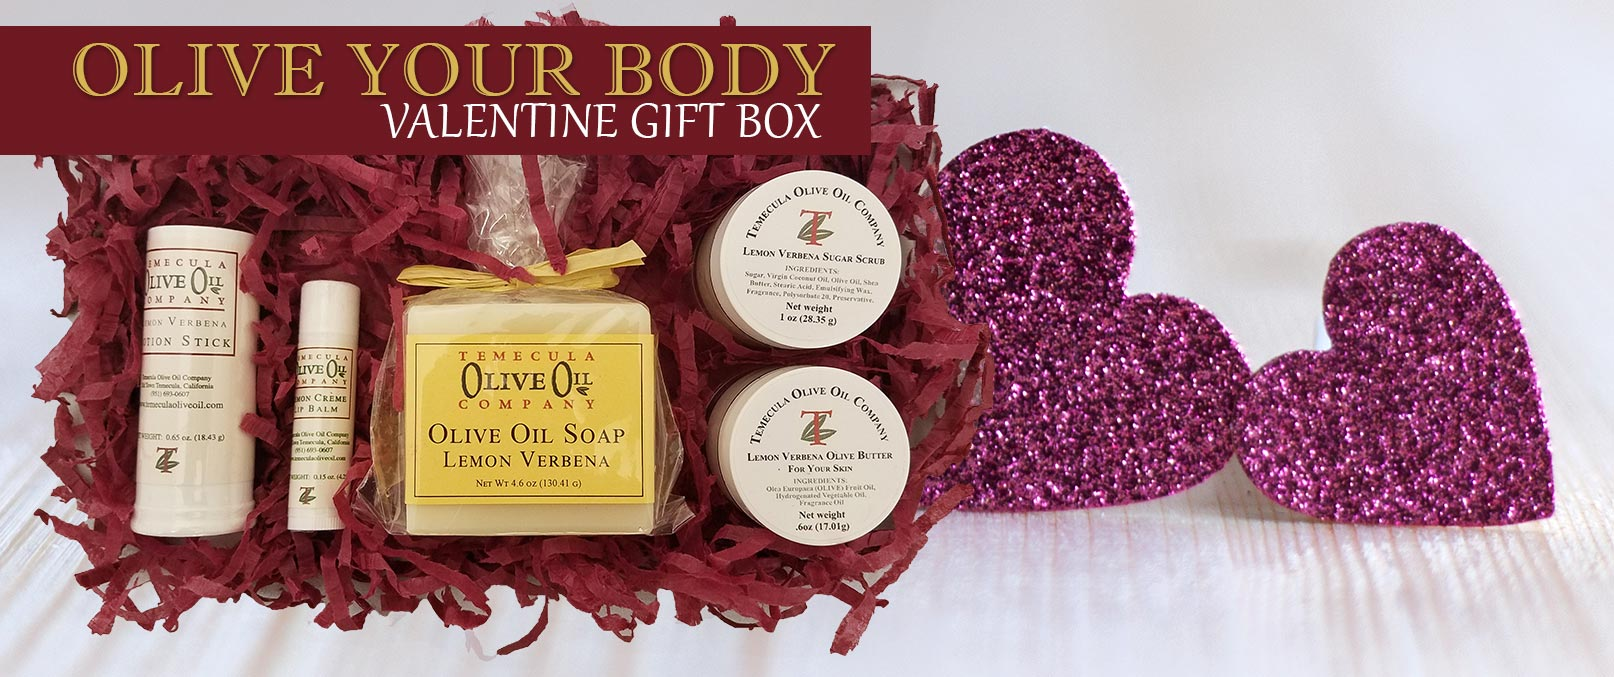 Olive Your Body Valentine Gift Sets